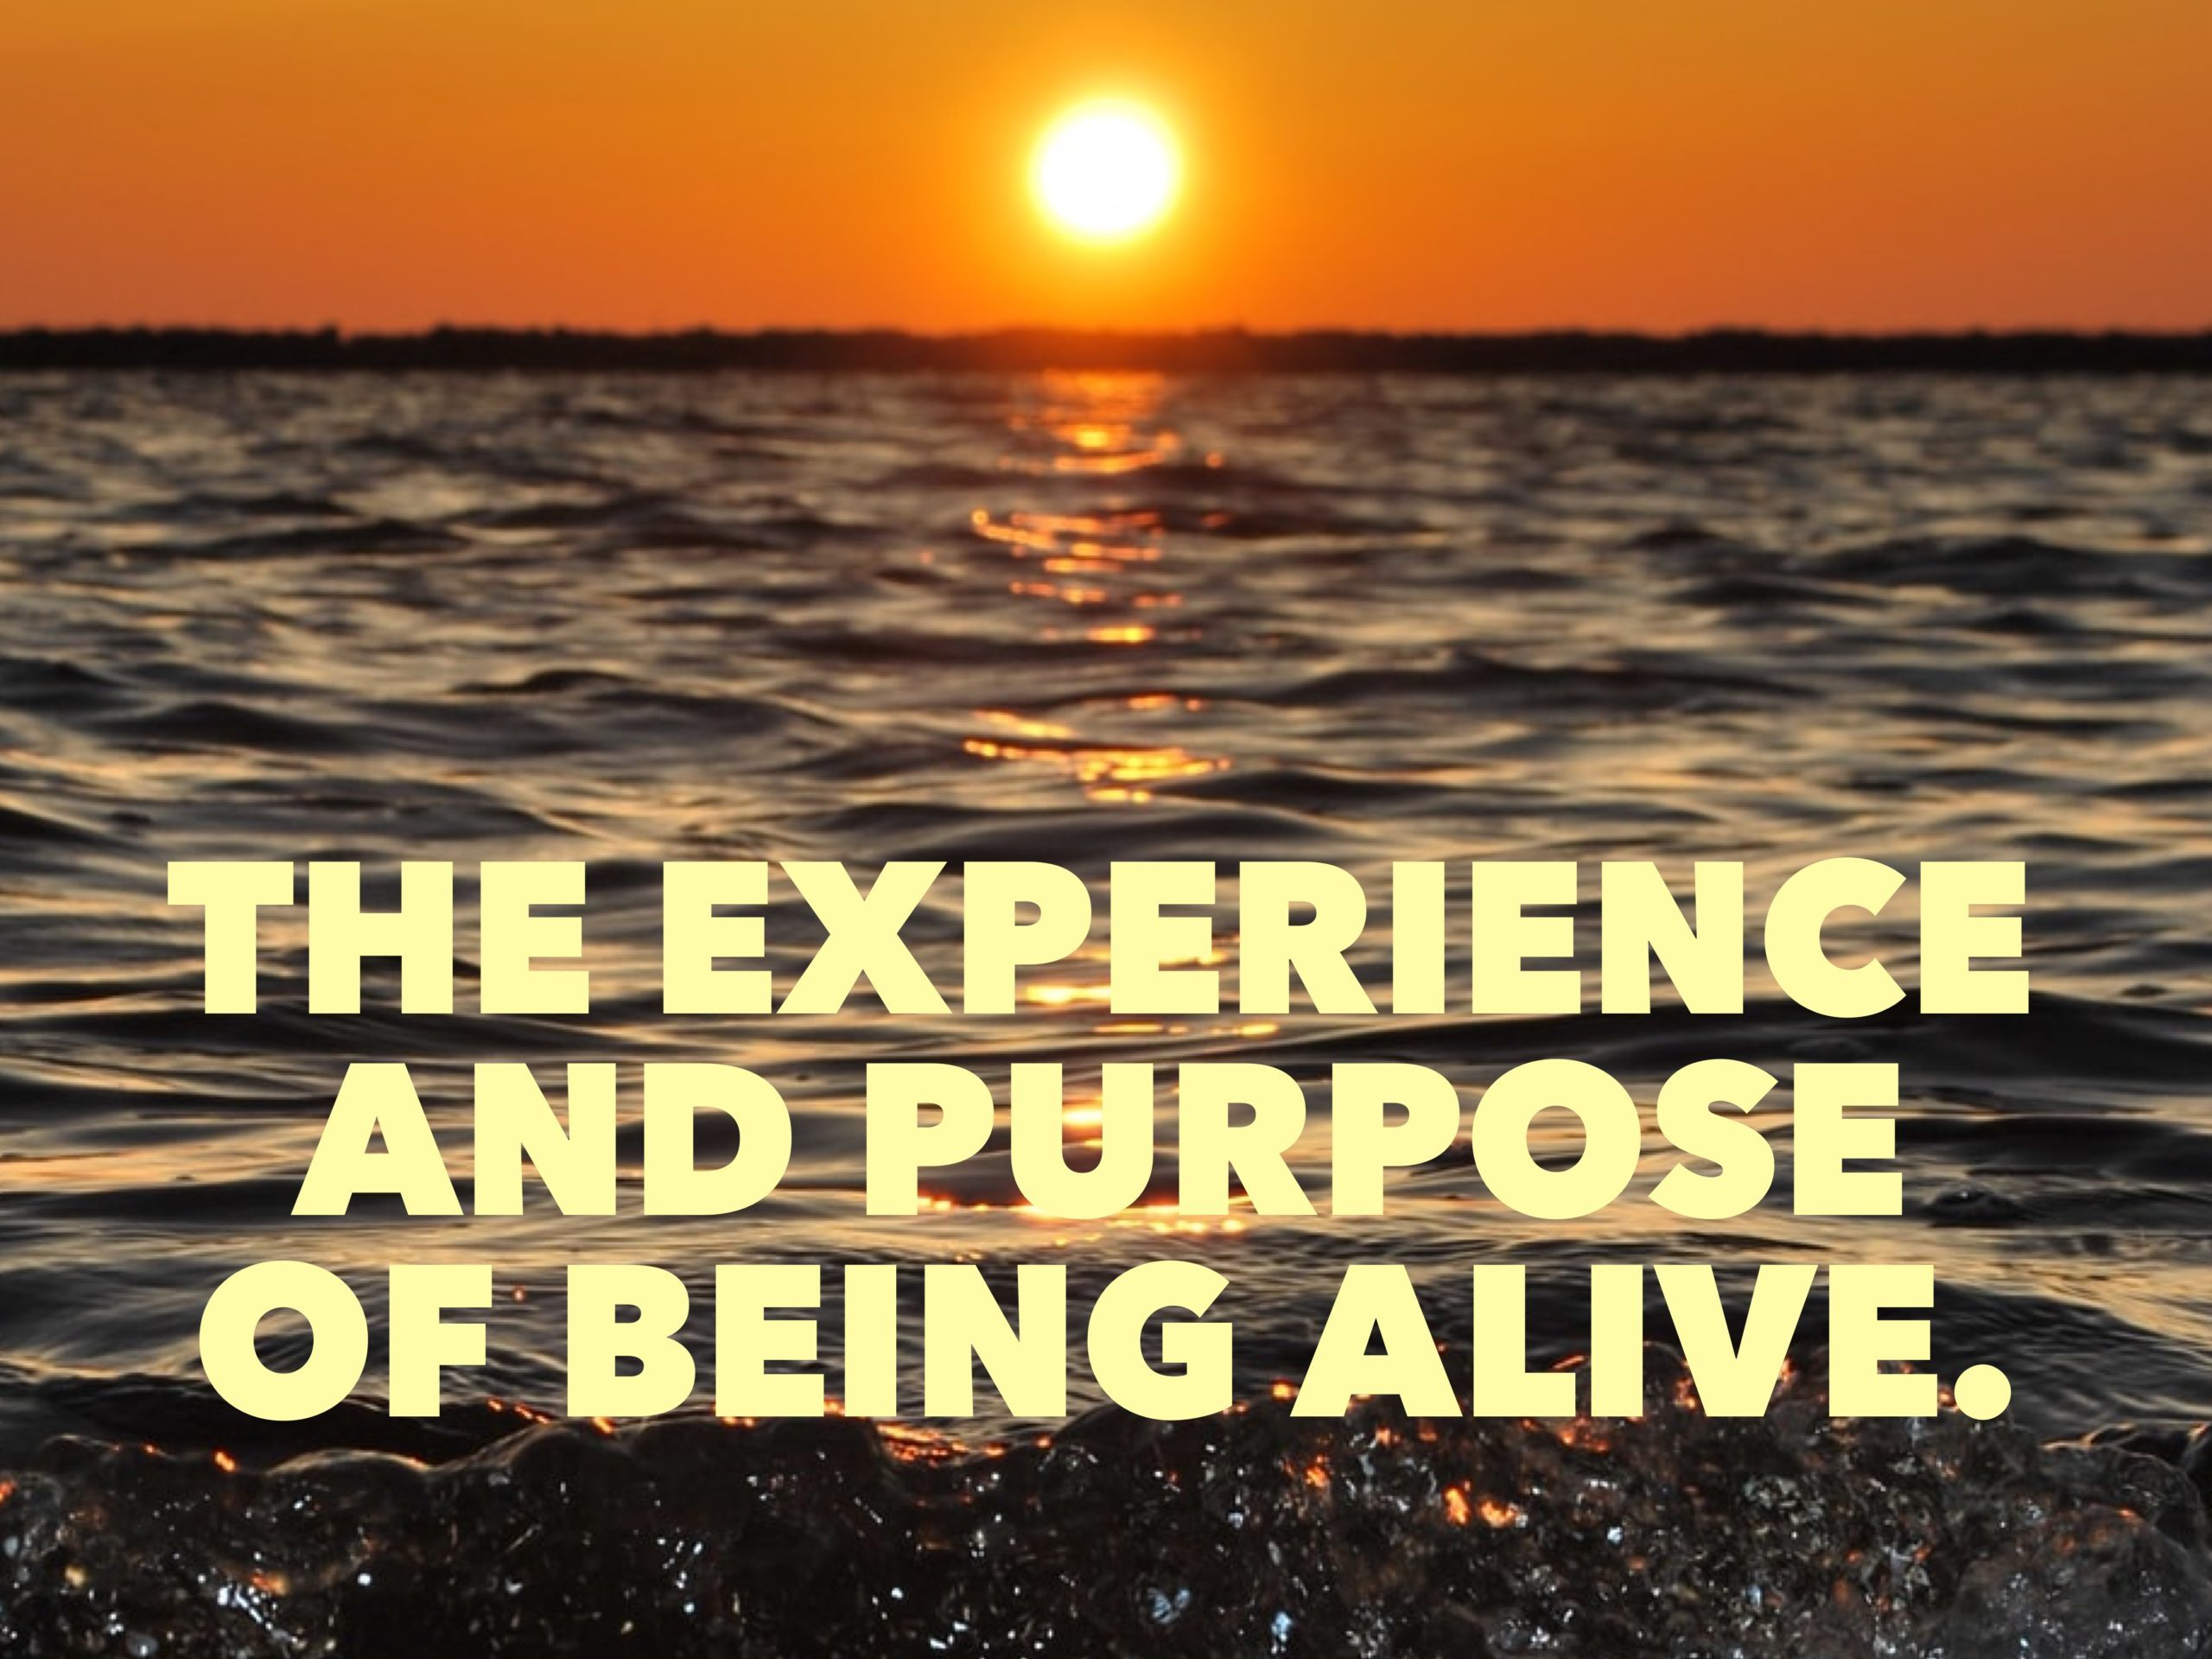 The Experience and Purpose of Being Alive